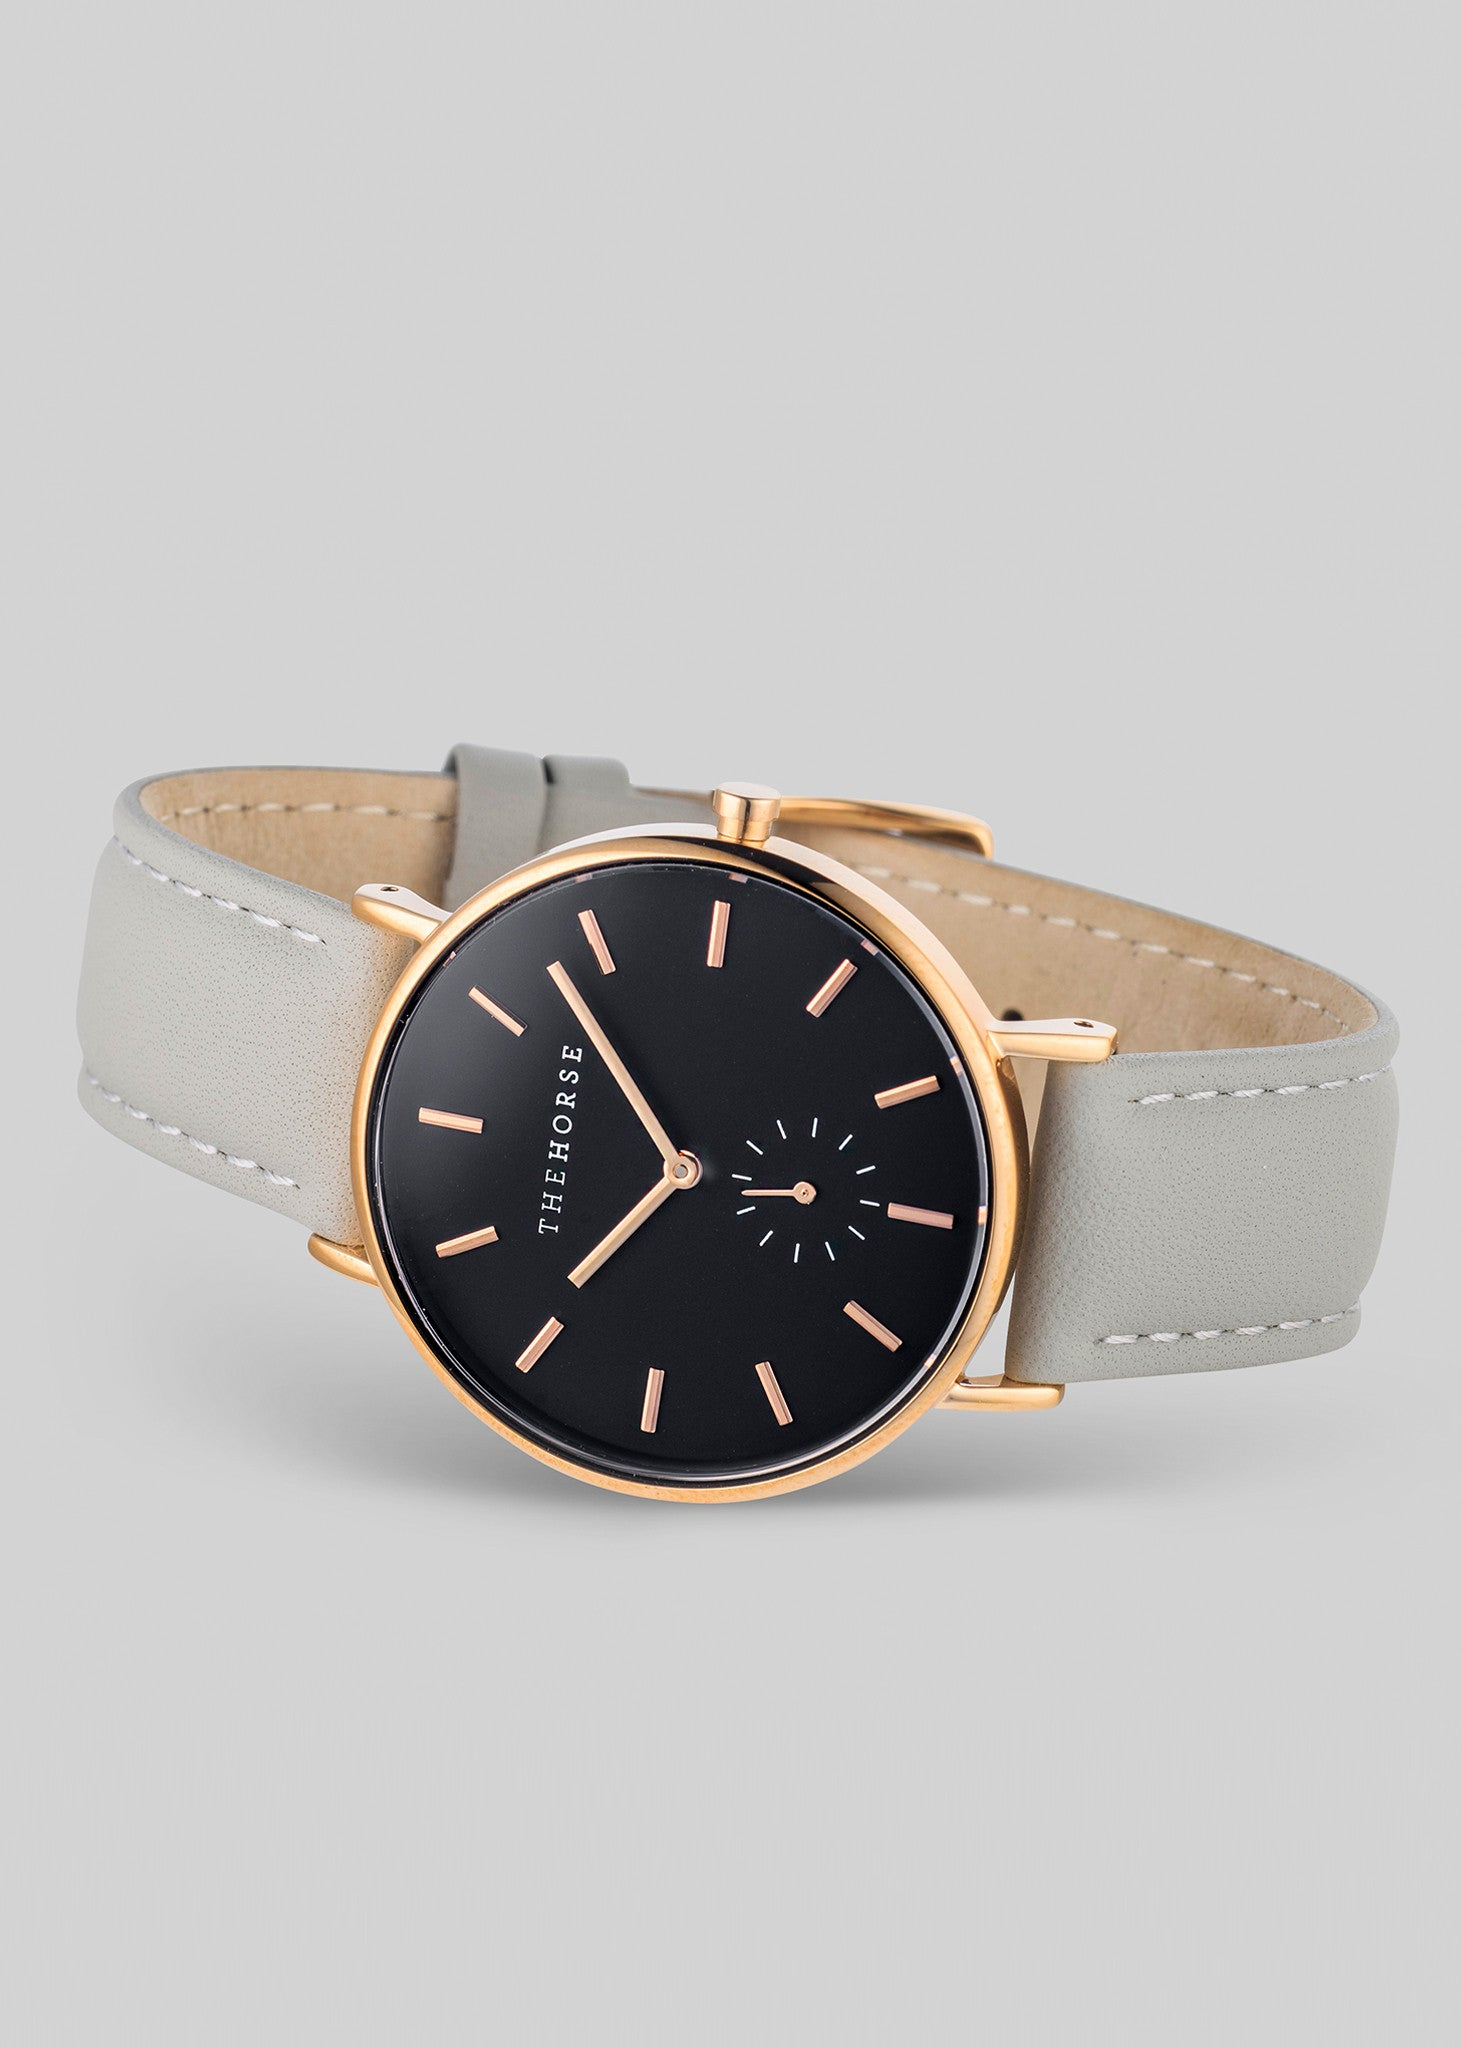 The Classic Rose Gold / Black Dial / Grey Leather